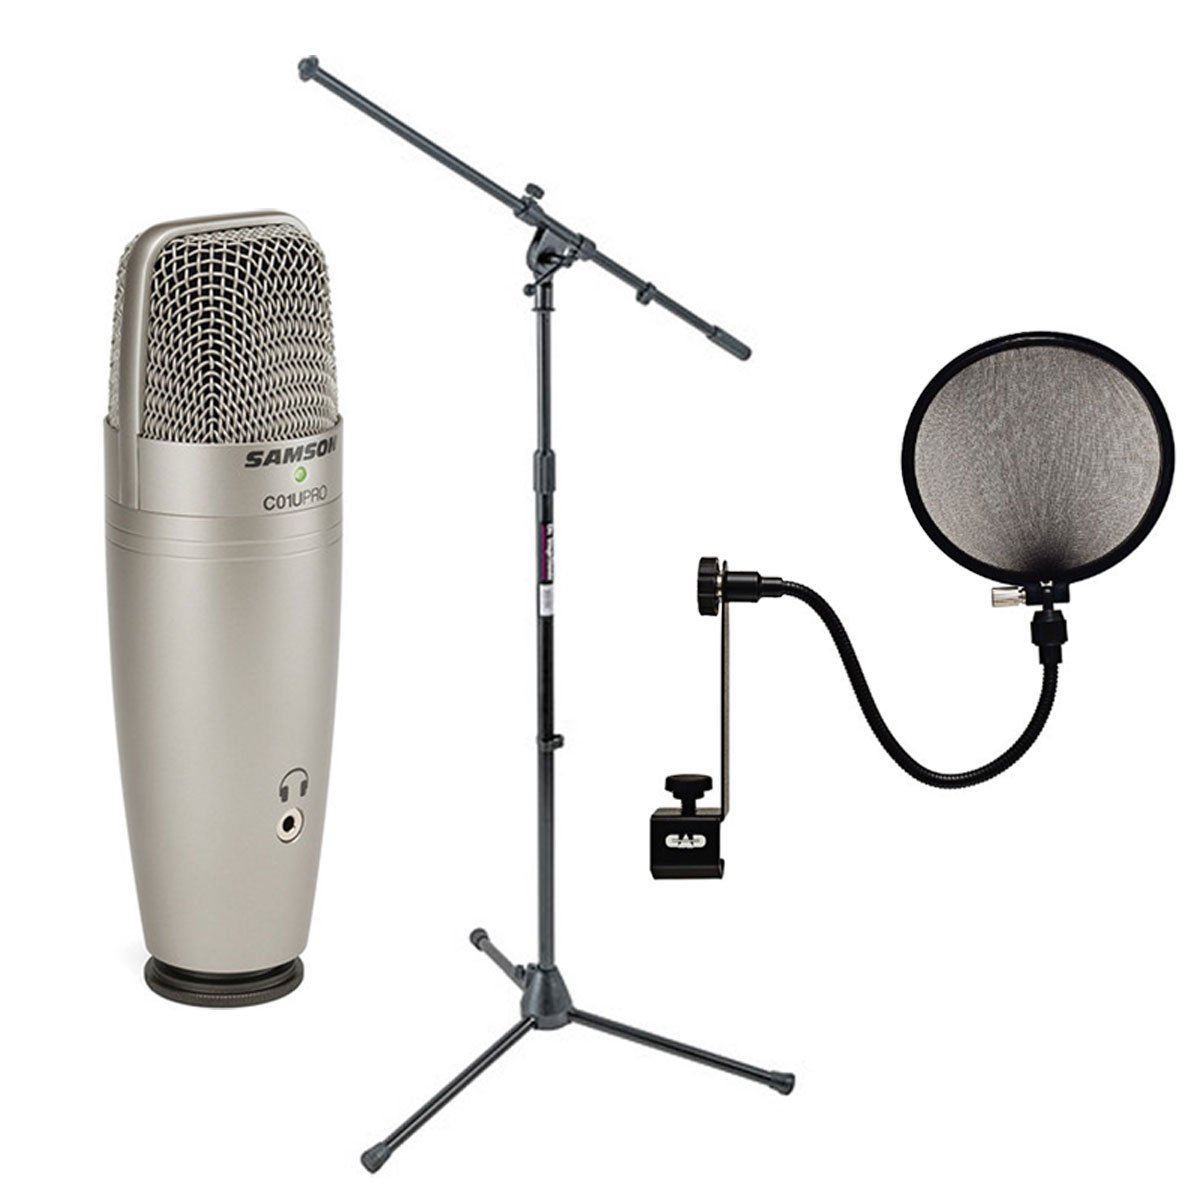 Samson C01U Pro USB Studio Condenser Microphone + On Stage MS7701B Euro Boom Microphone Stand+ 15A Pop Filter on 15-Inch Gooseneck